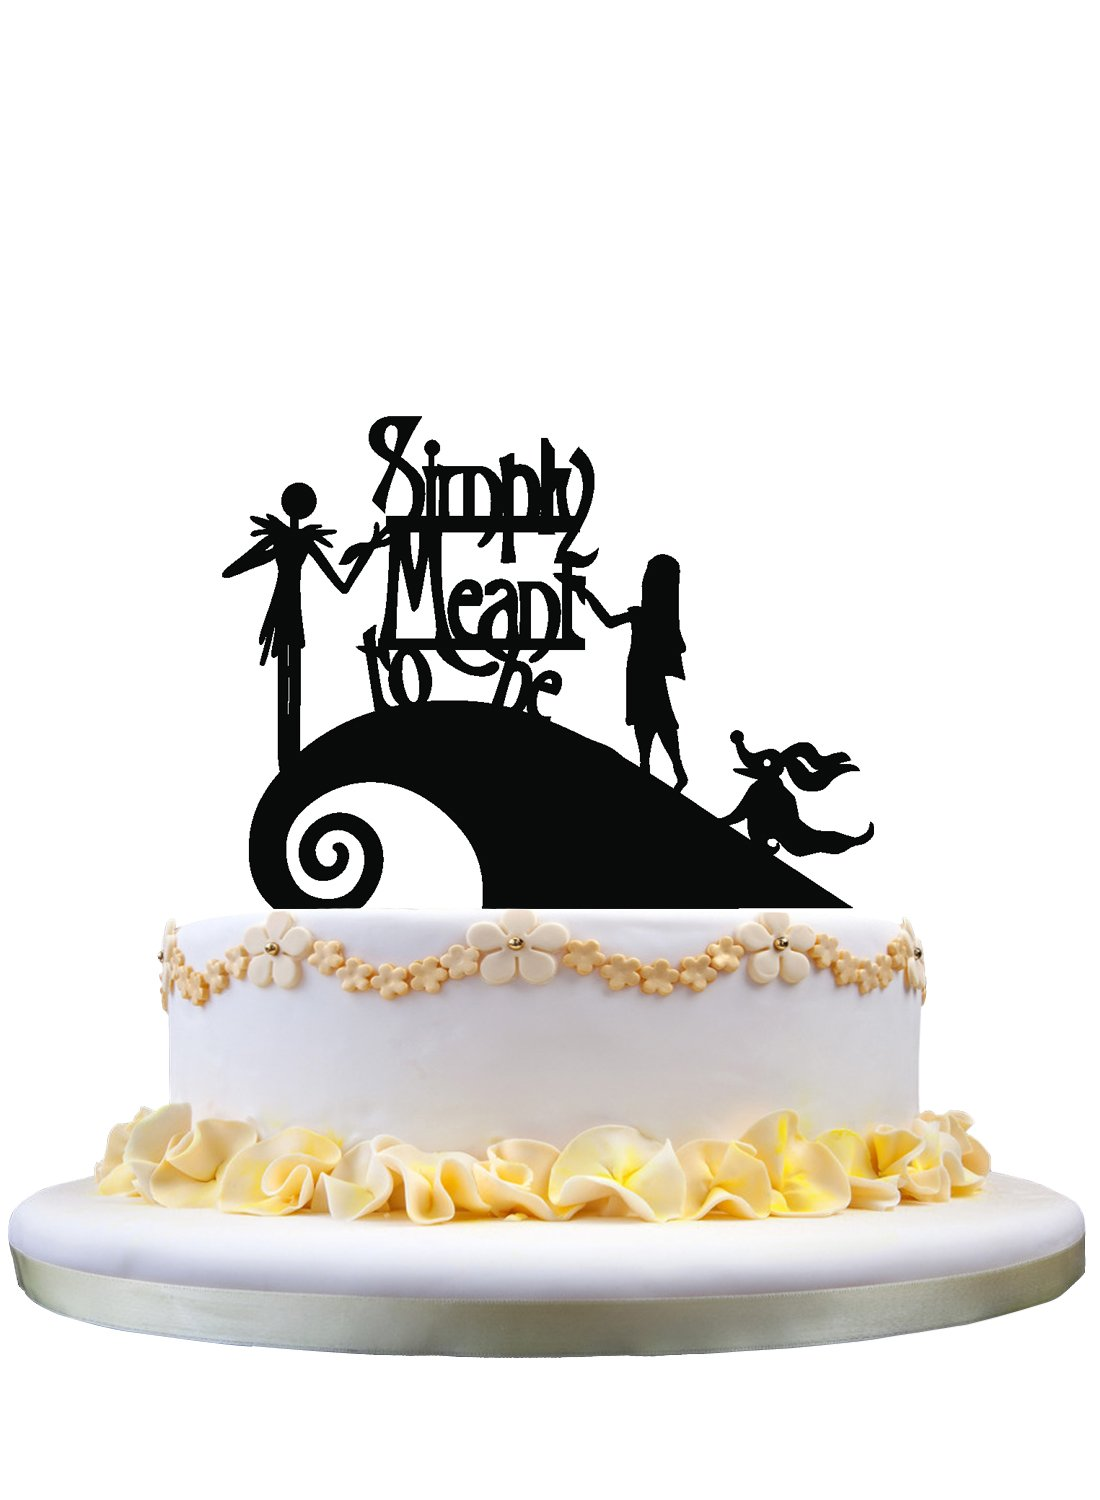 Jack and Sally Simply Meant To Be Wedding Cake Topper,Jack and Sally ...